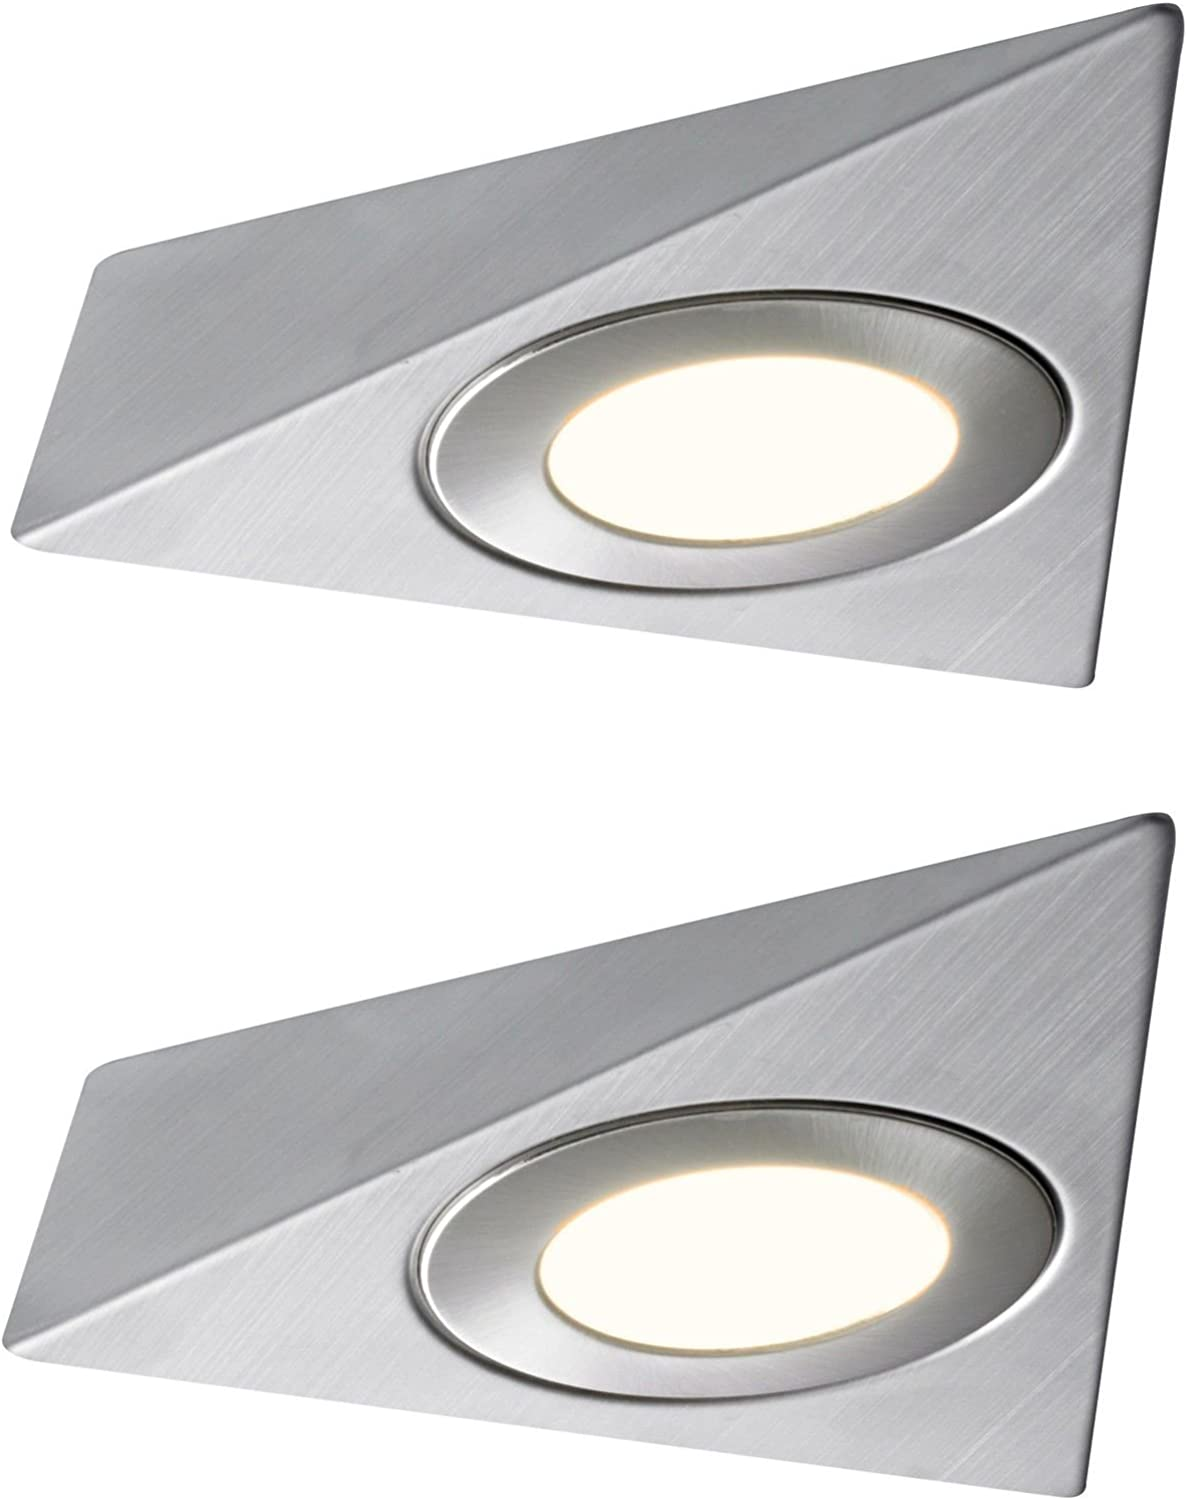 2x Triangle Led Light Under Kitchen Cabinet Cupboard Warm White Mains Kit UK